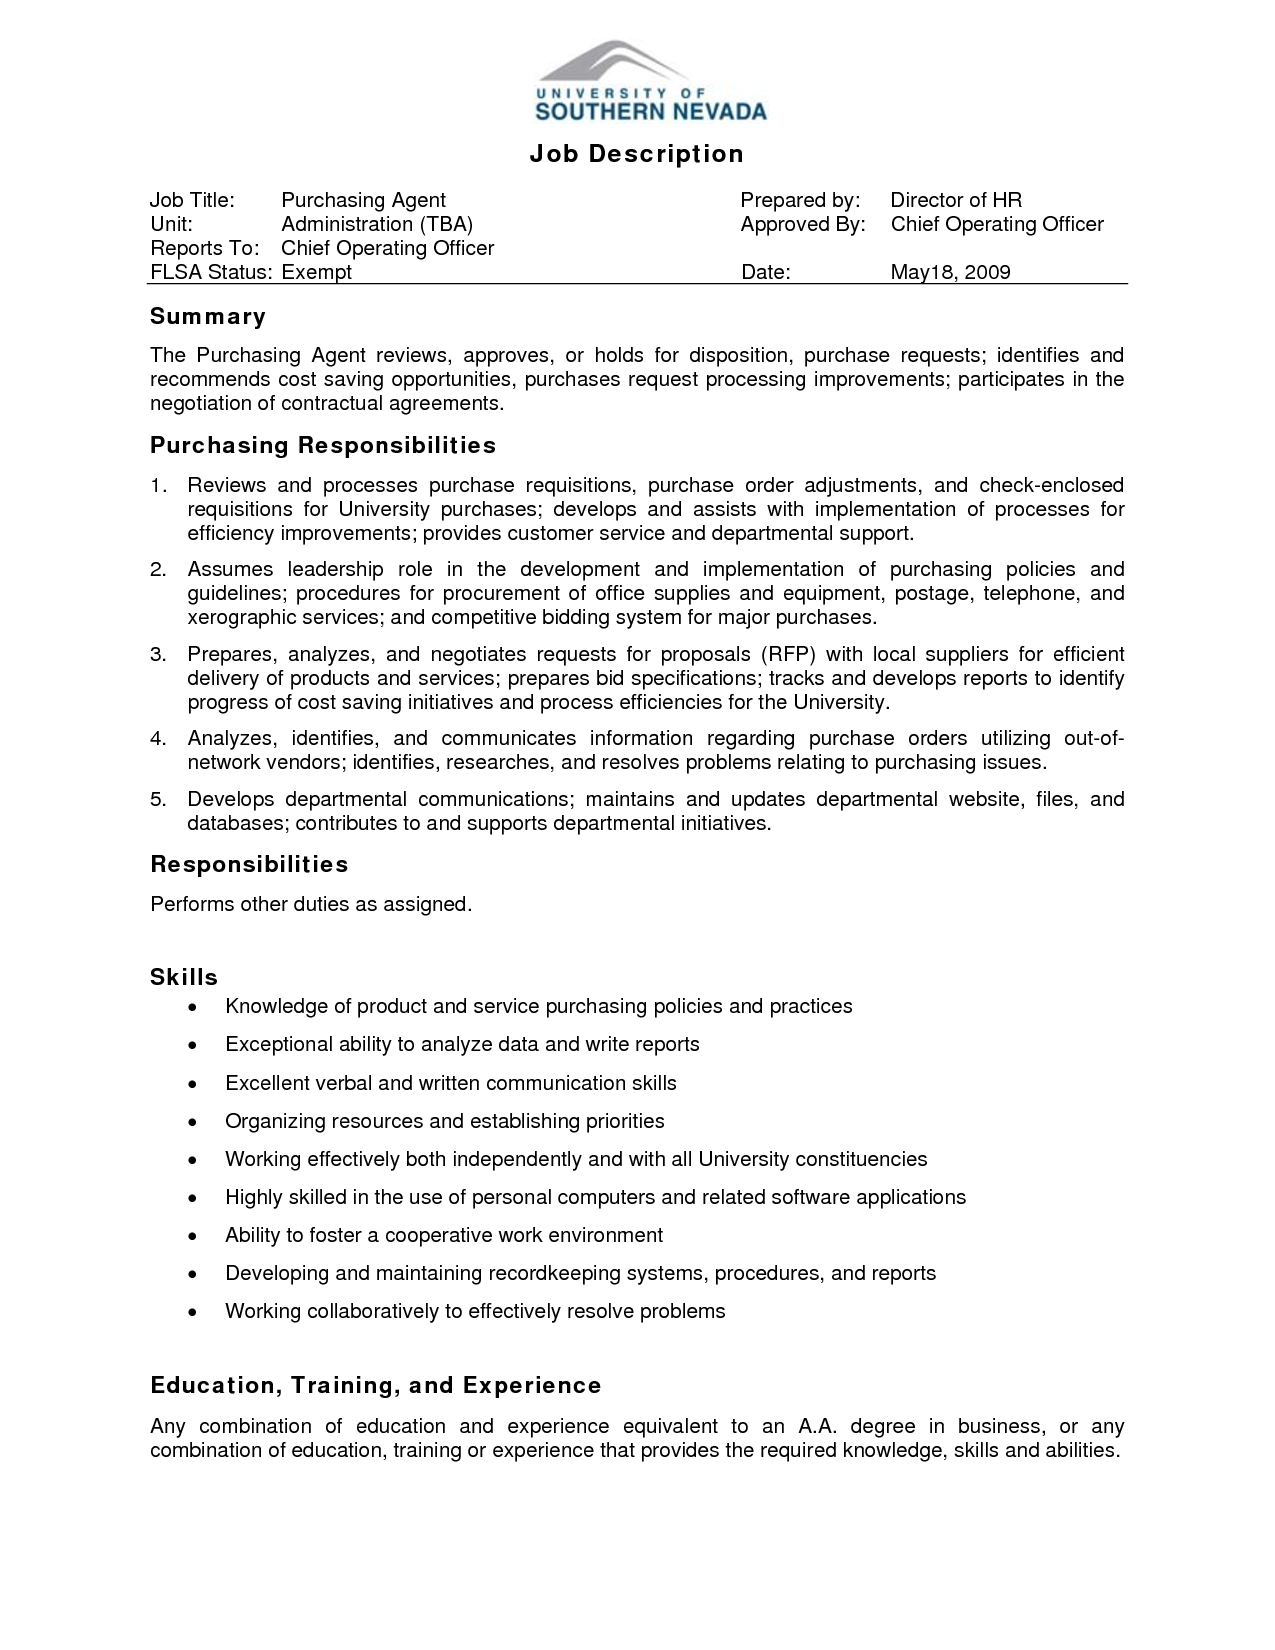 administrative assistant job description sample latest posts ...